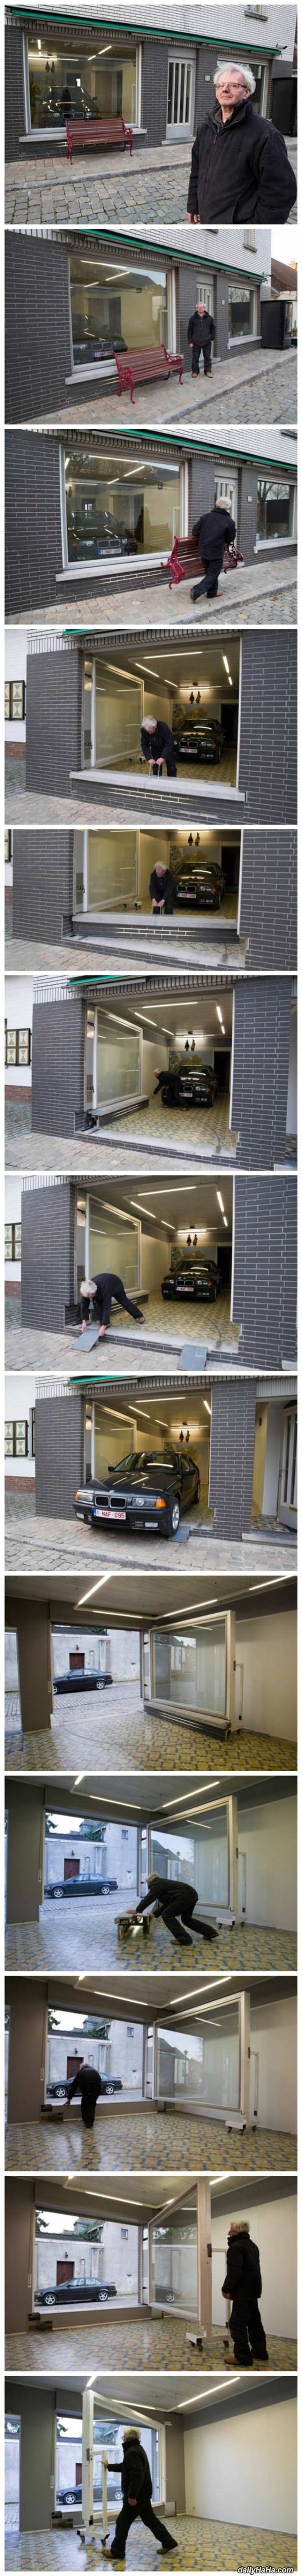 city denied man a garage permit funny picture